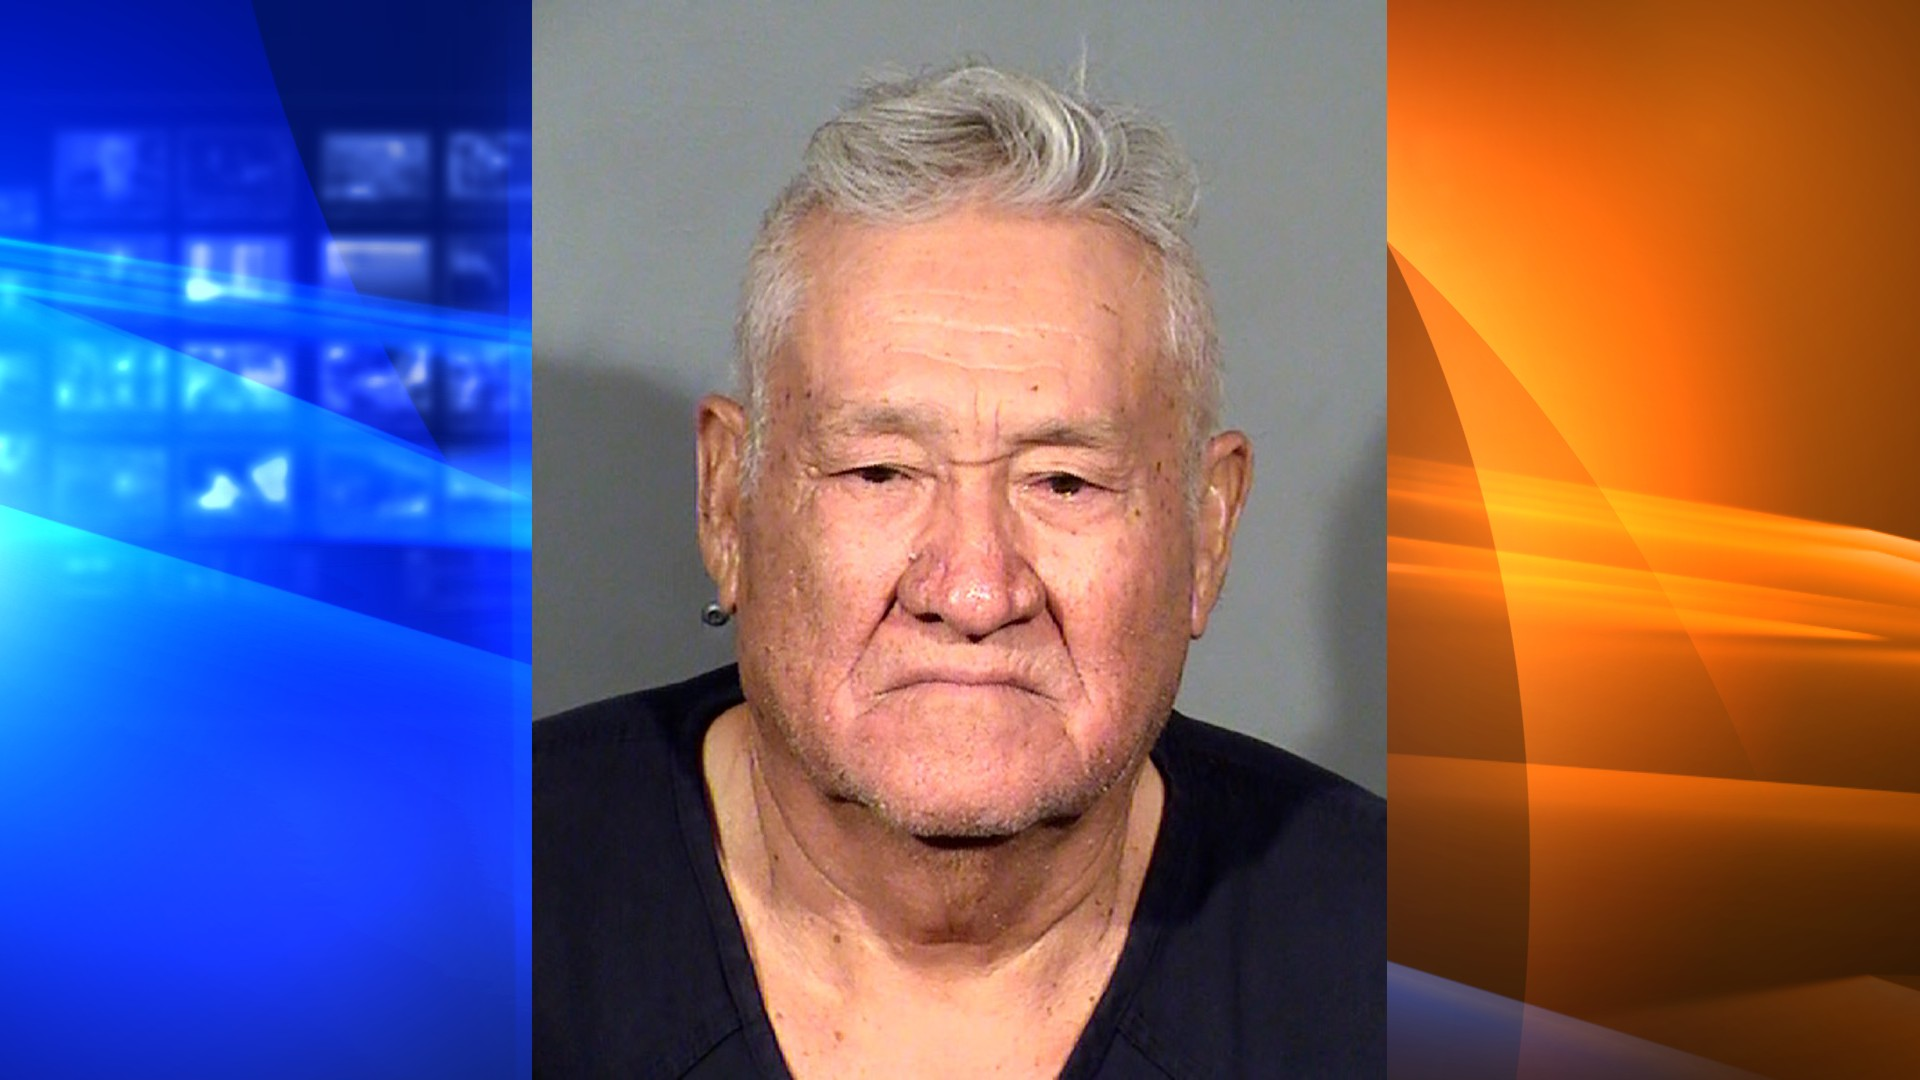 This booking photo from the Clark County Detention Center, in Las Vegas, shows Arnoldo Lozano-Sanchez following his arrest Tuesday, Aug. 10, 2021. Police say that landlord Lozano-Sanchez argued with his live-in tenants over unpaid rent before opening fire with a gun in a small house near downtown Las Vegas, killing two women and shooting a man nine times. The male tenant survived. (Clark County Detention Center via AP)